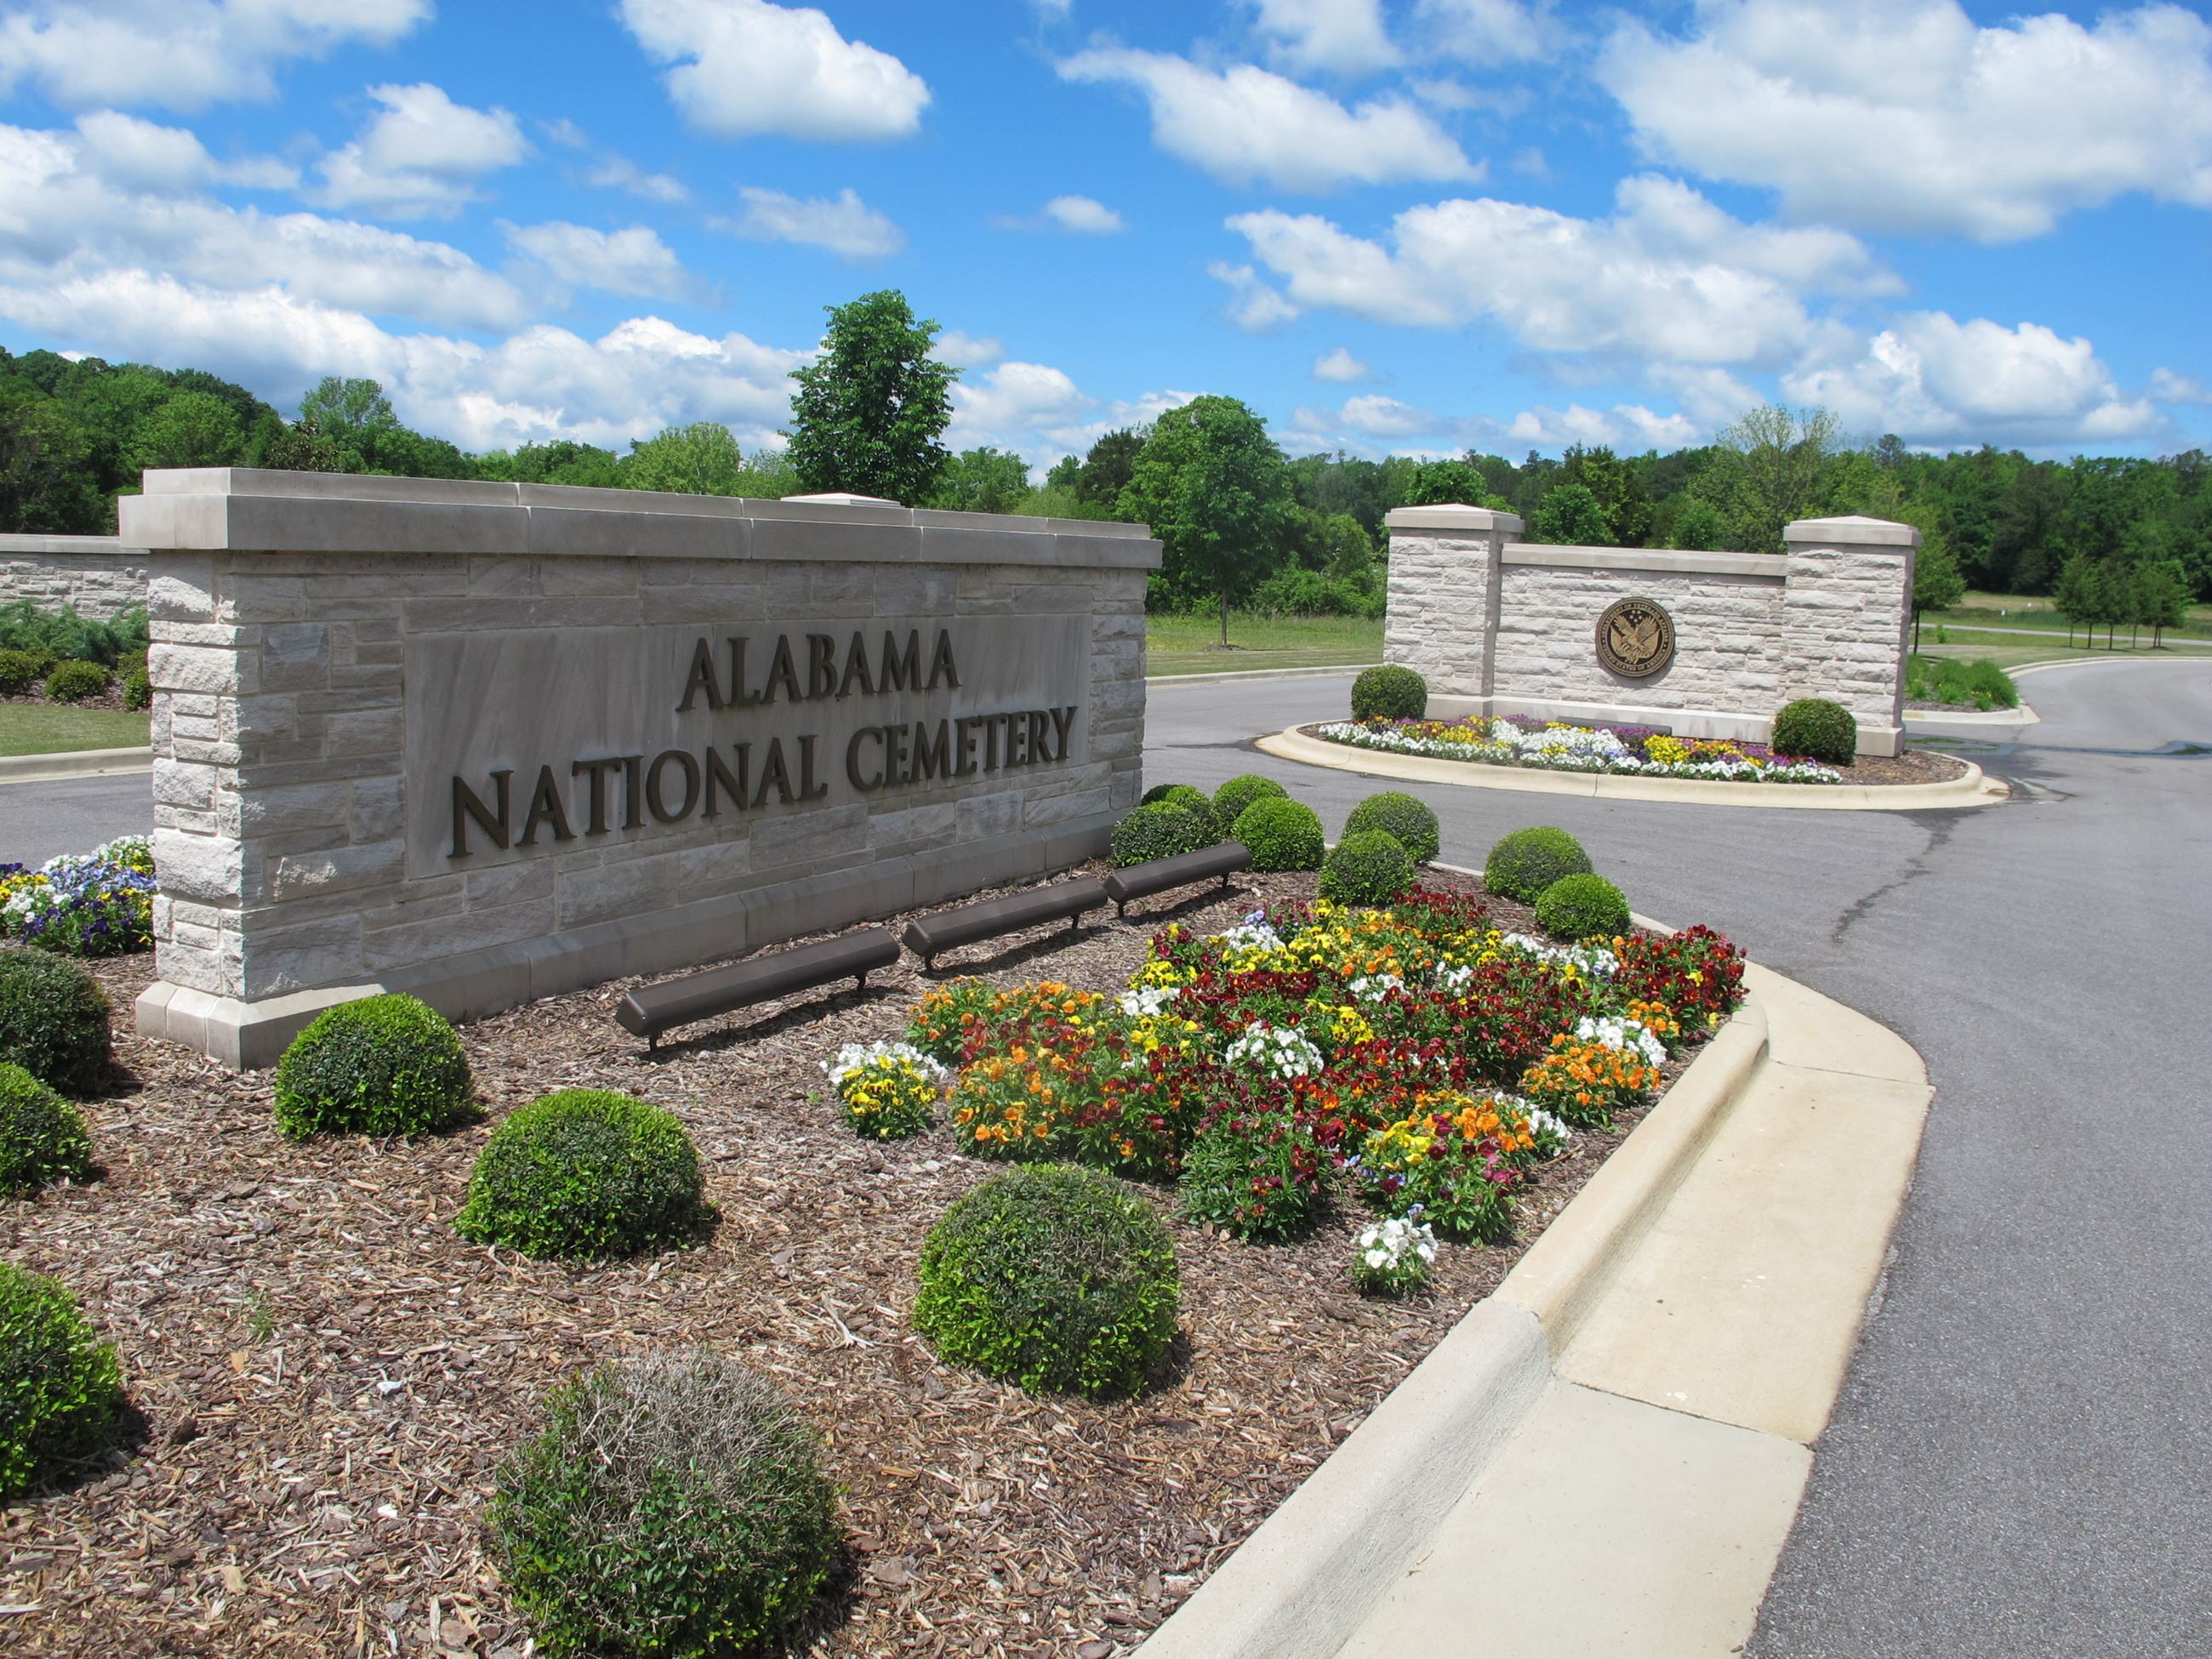 Alabama National Cemetery Sign